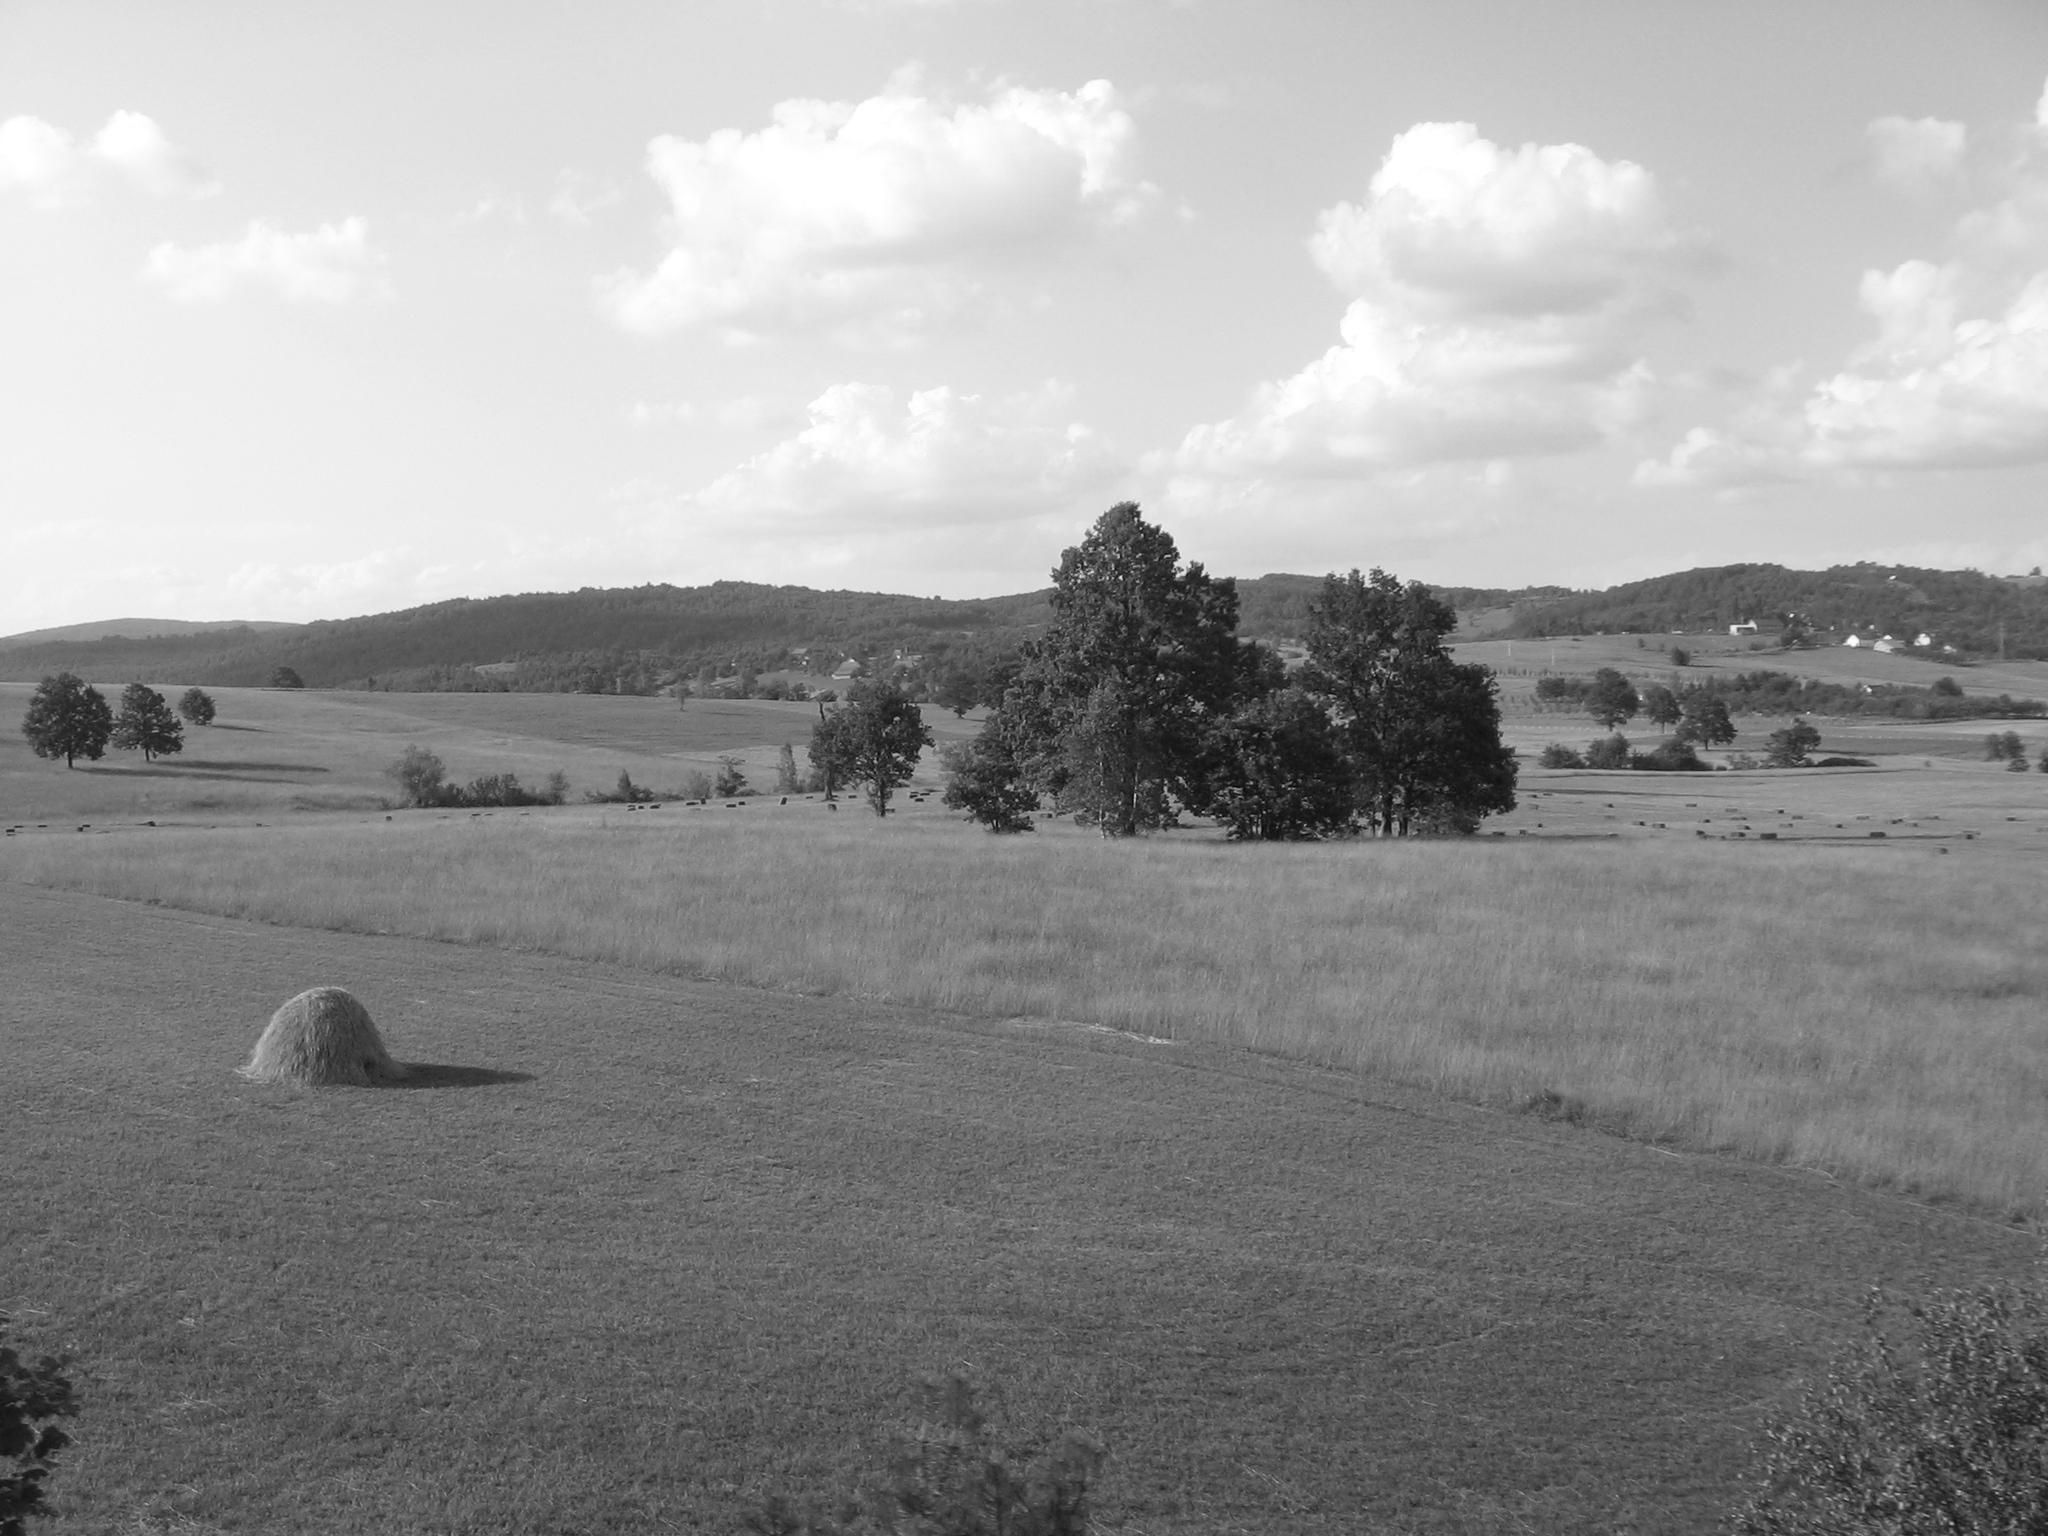 View of mountain fields in grayscale.